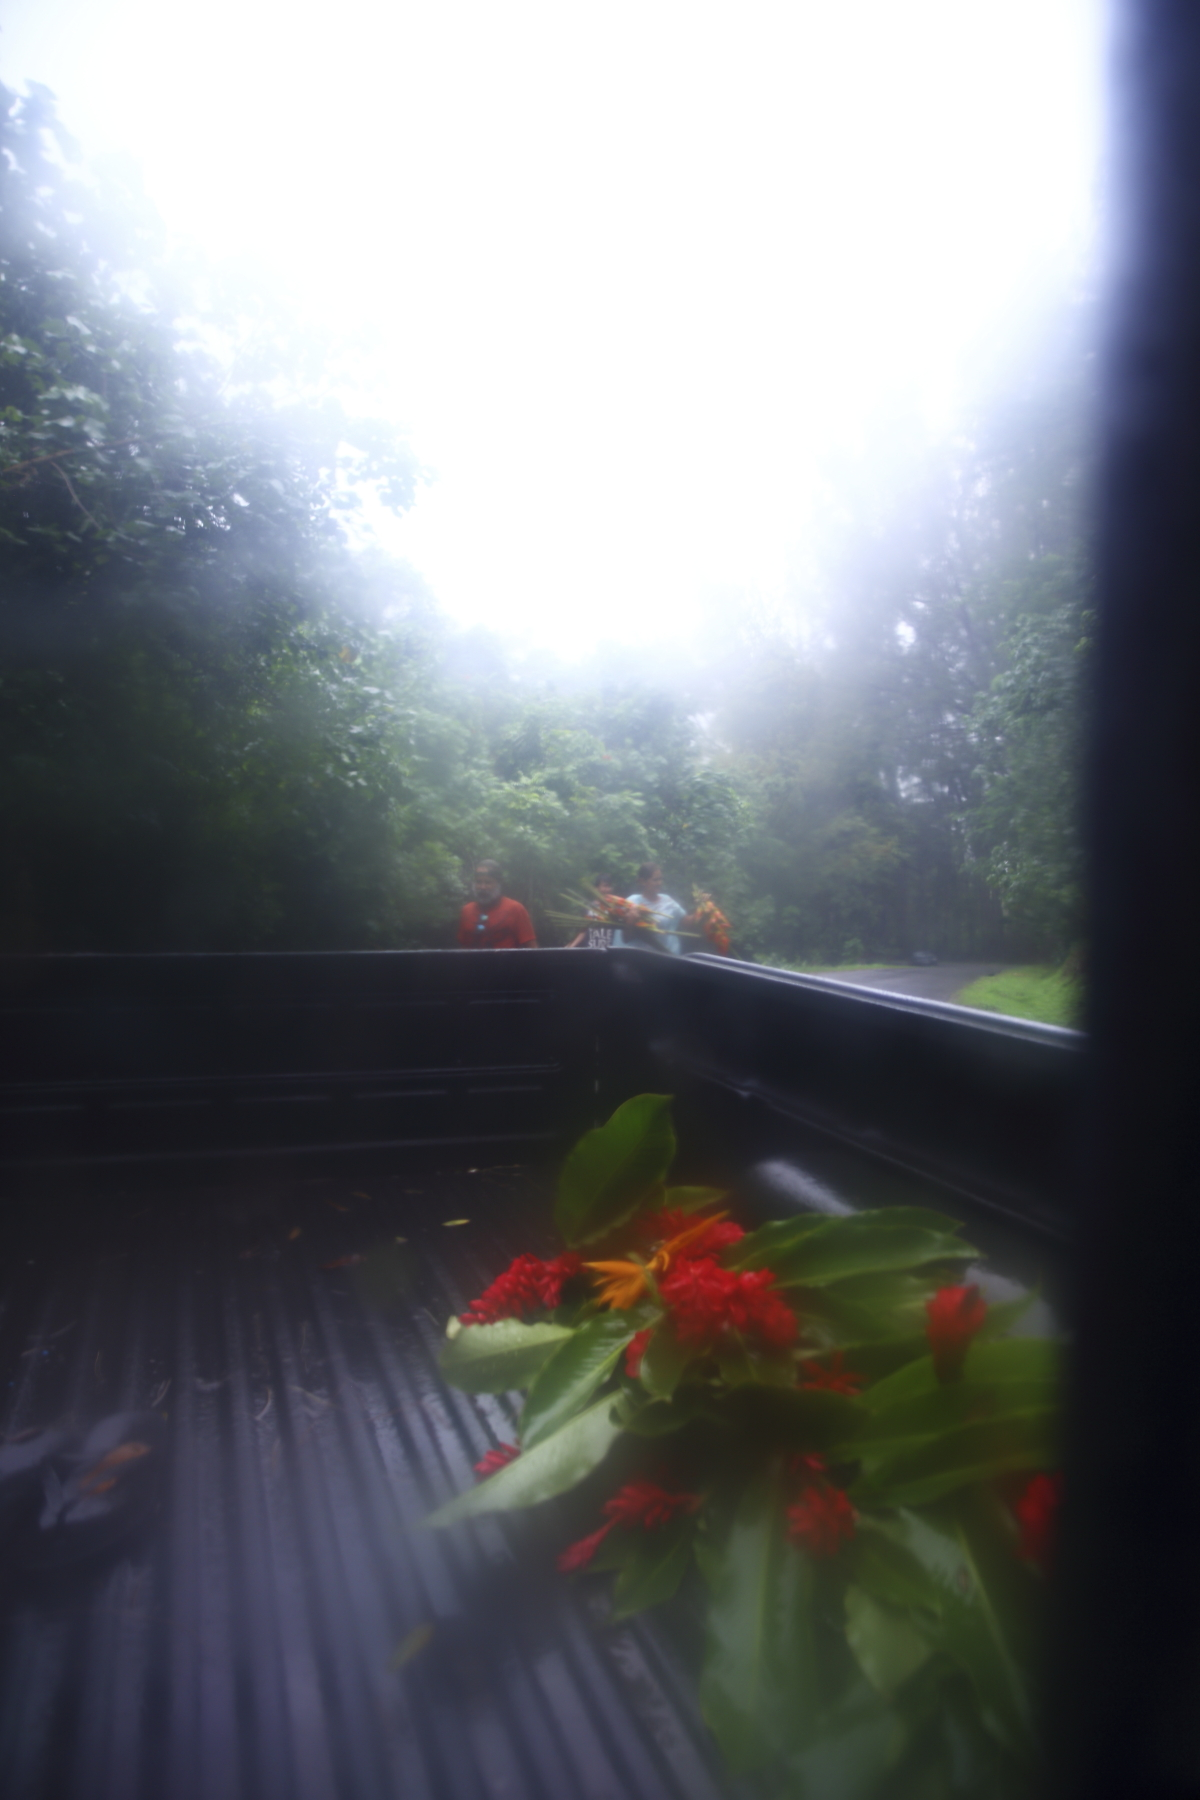 Trip into the rain forest to collect flowers